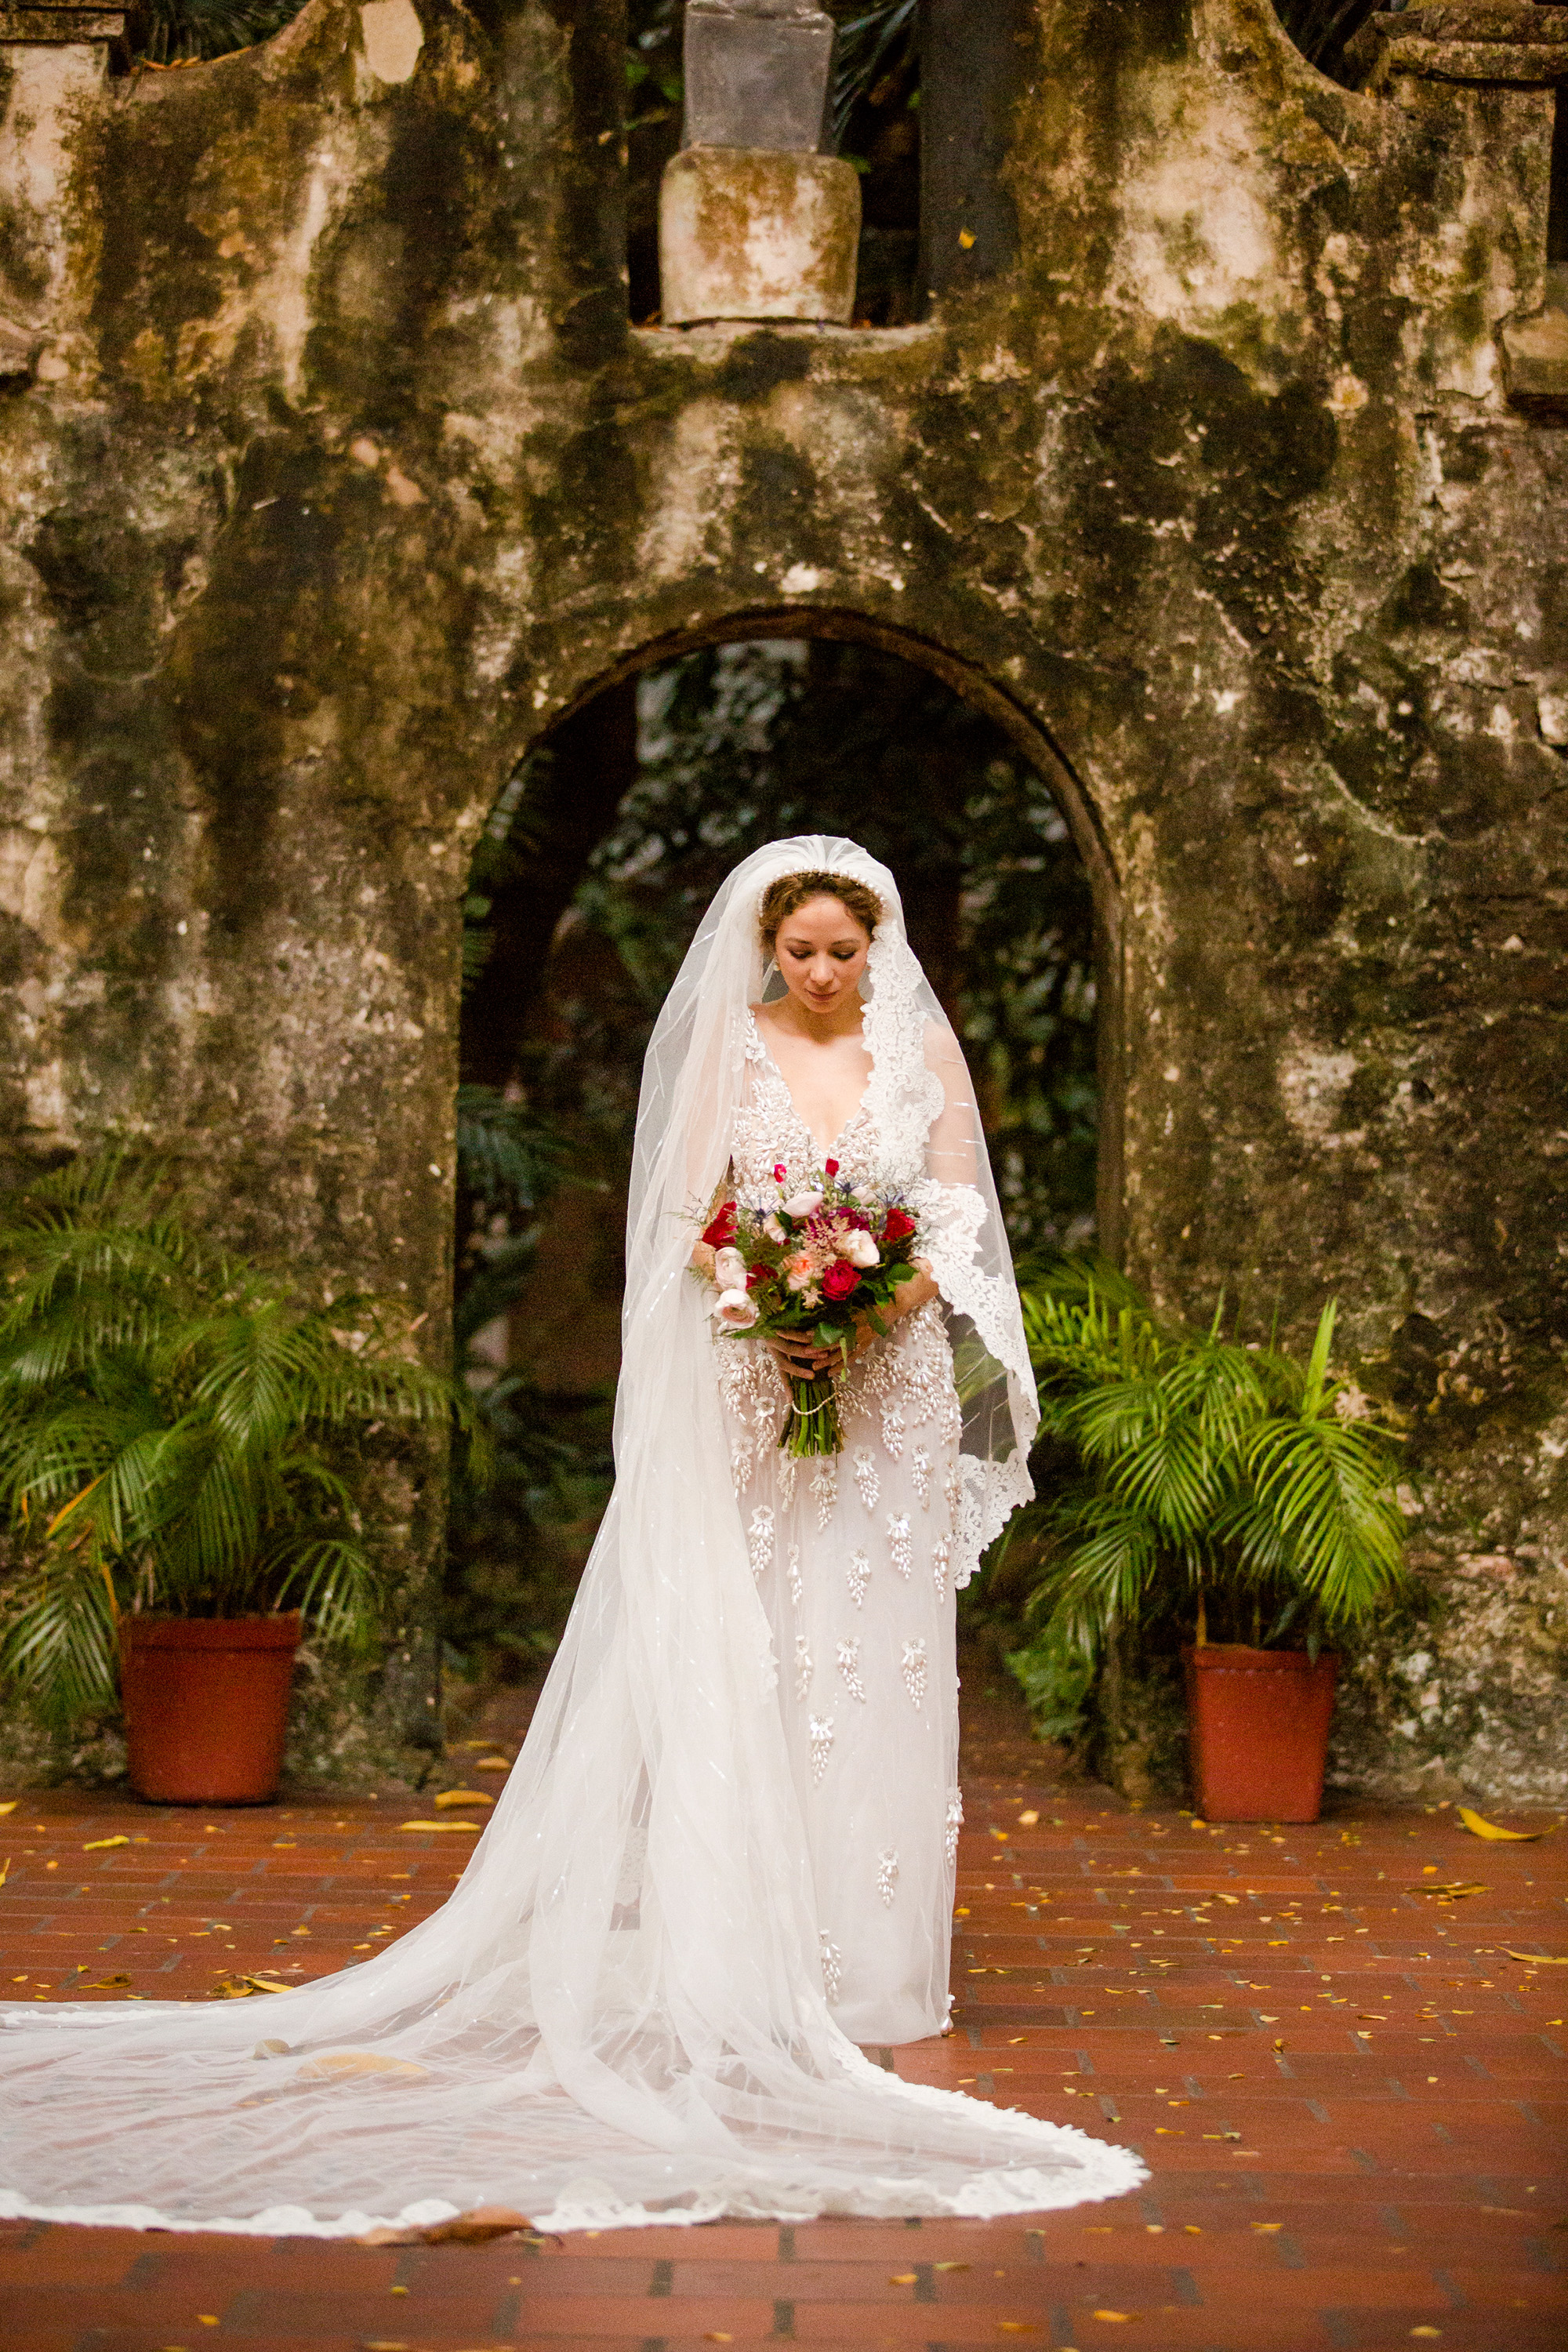 How to Prevent Wedding Dress Wrinkles